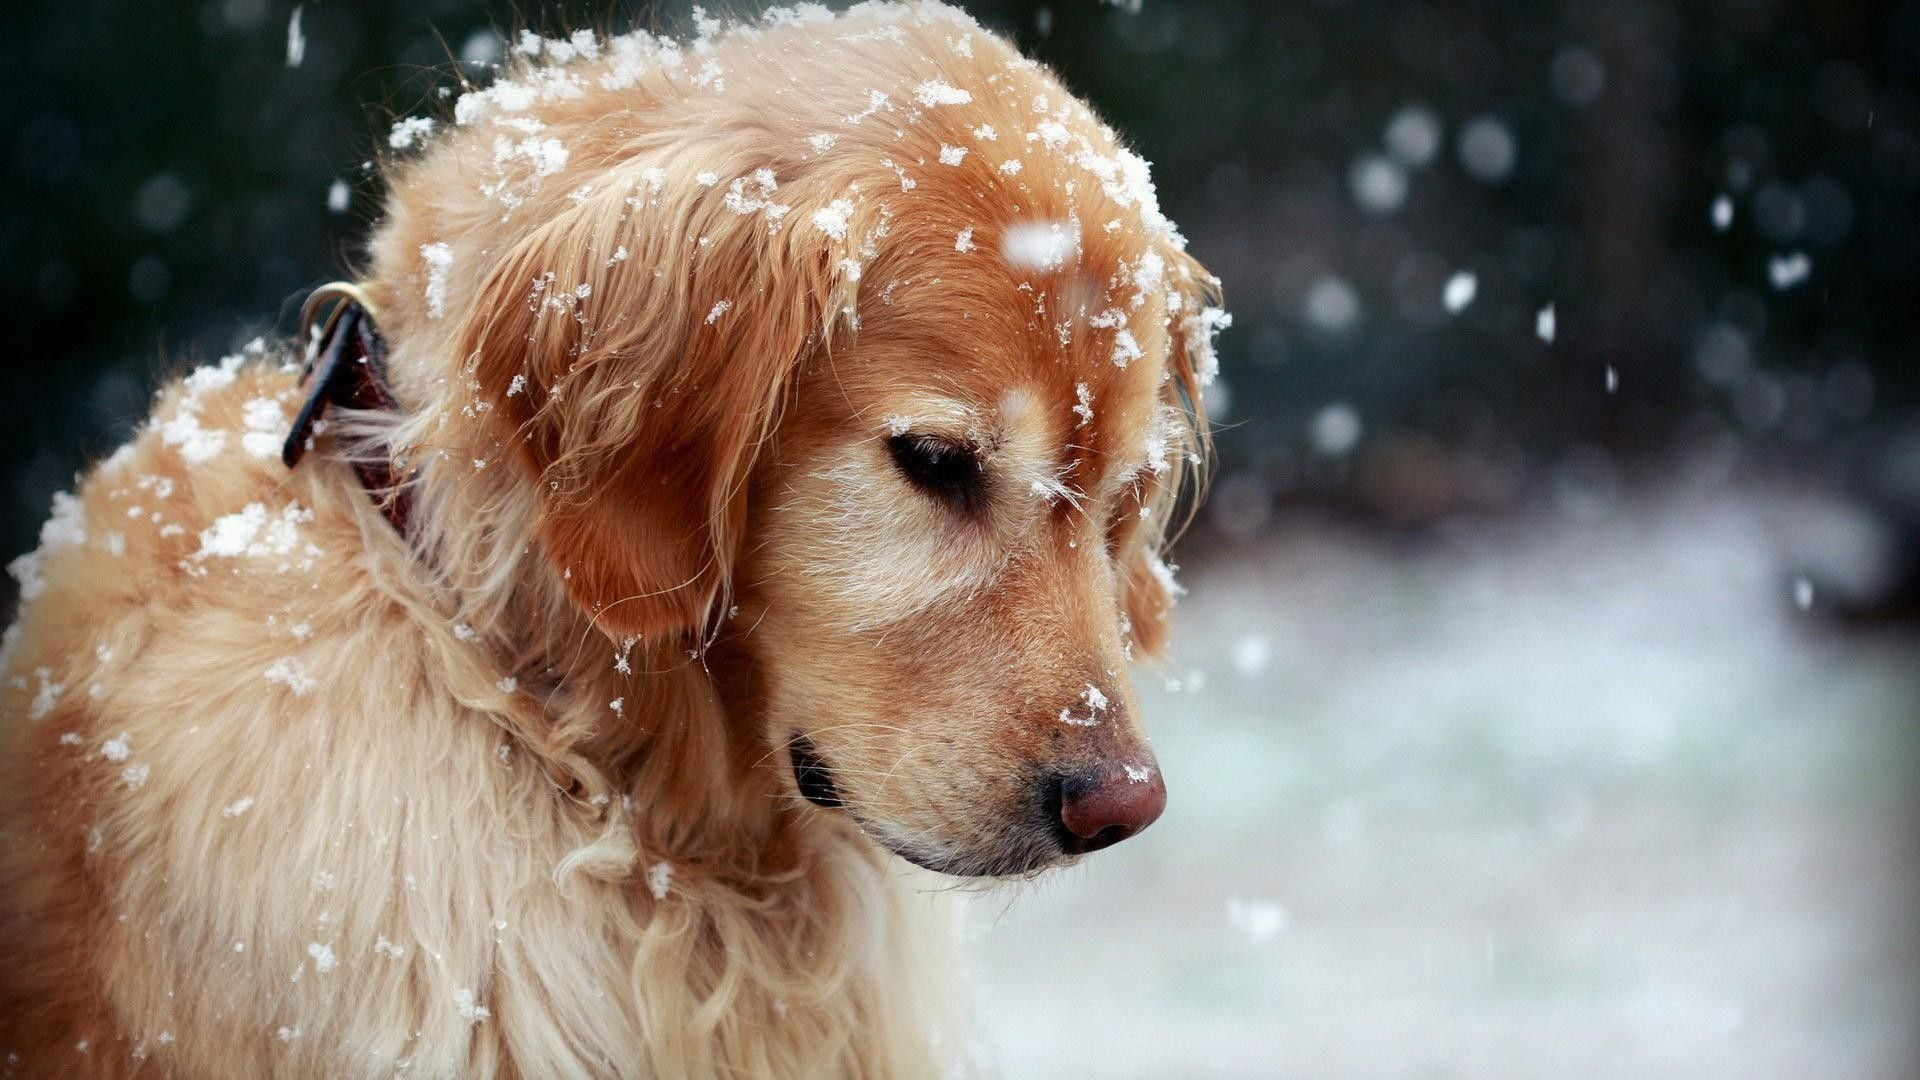 1920x1200 High Resolution Wallpapers Widescreen Golden Retriever Tons Of Awesome Golden Retriever Wallpapers To Download For Free In 2020 Pets Cute Dogs Best Dogs